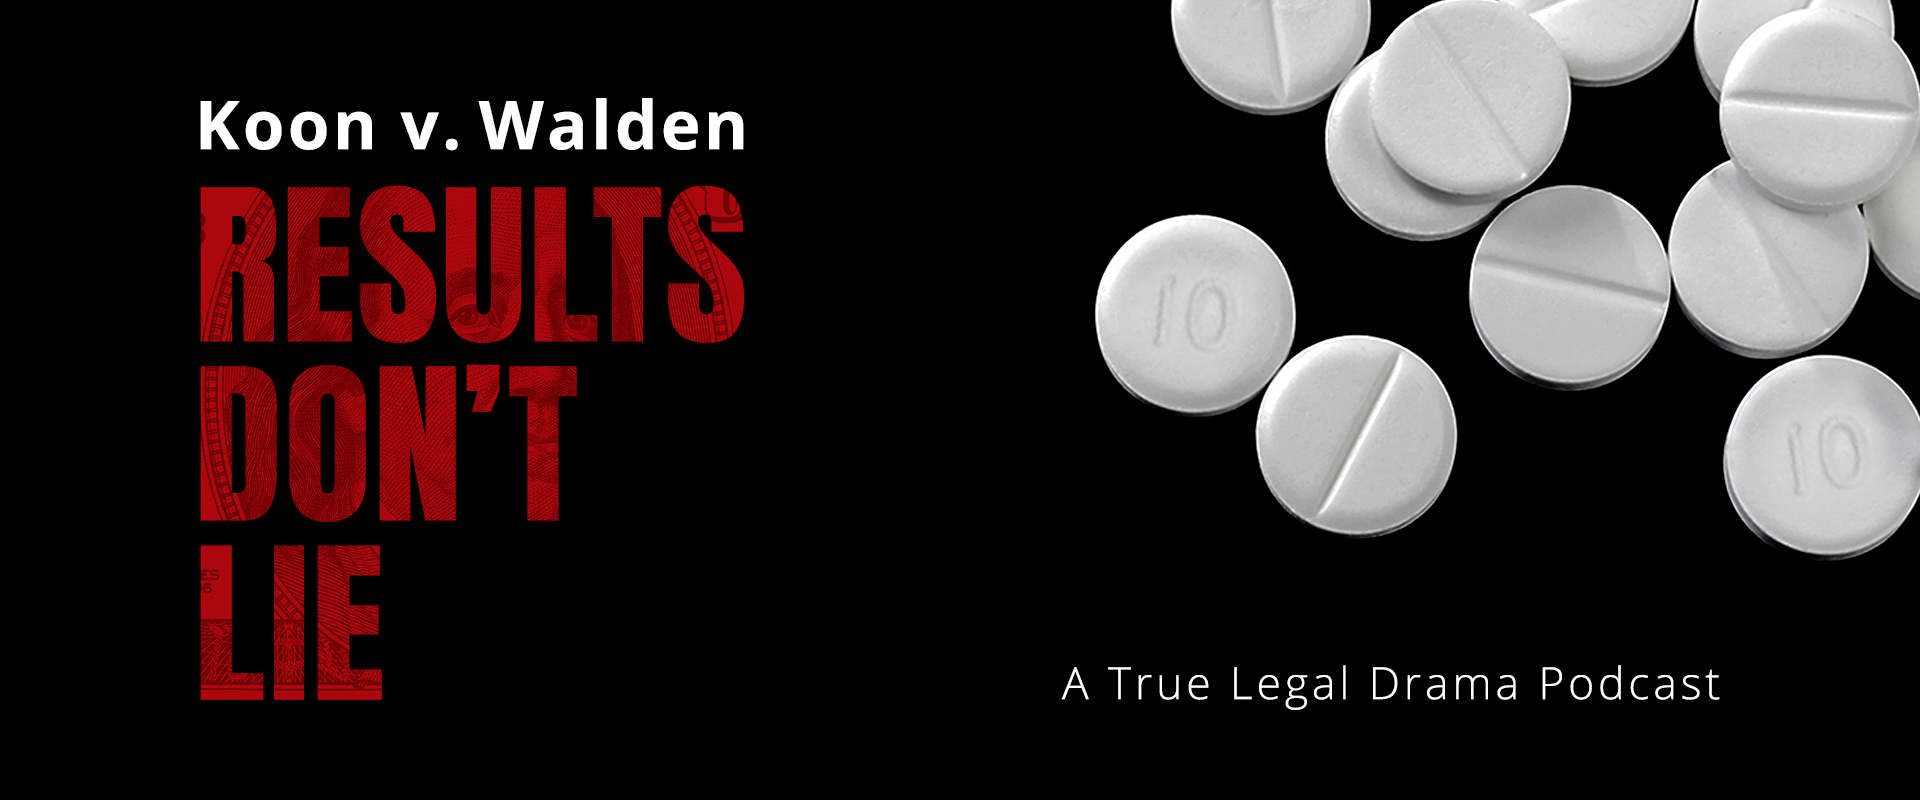 Local Law Firm Launches True Legal Drama Podcast About Opioid Addiction, Healthcare Systems, and Change